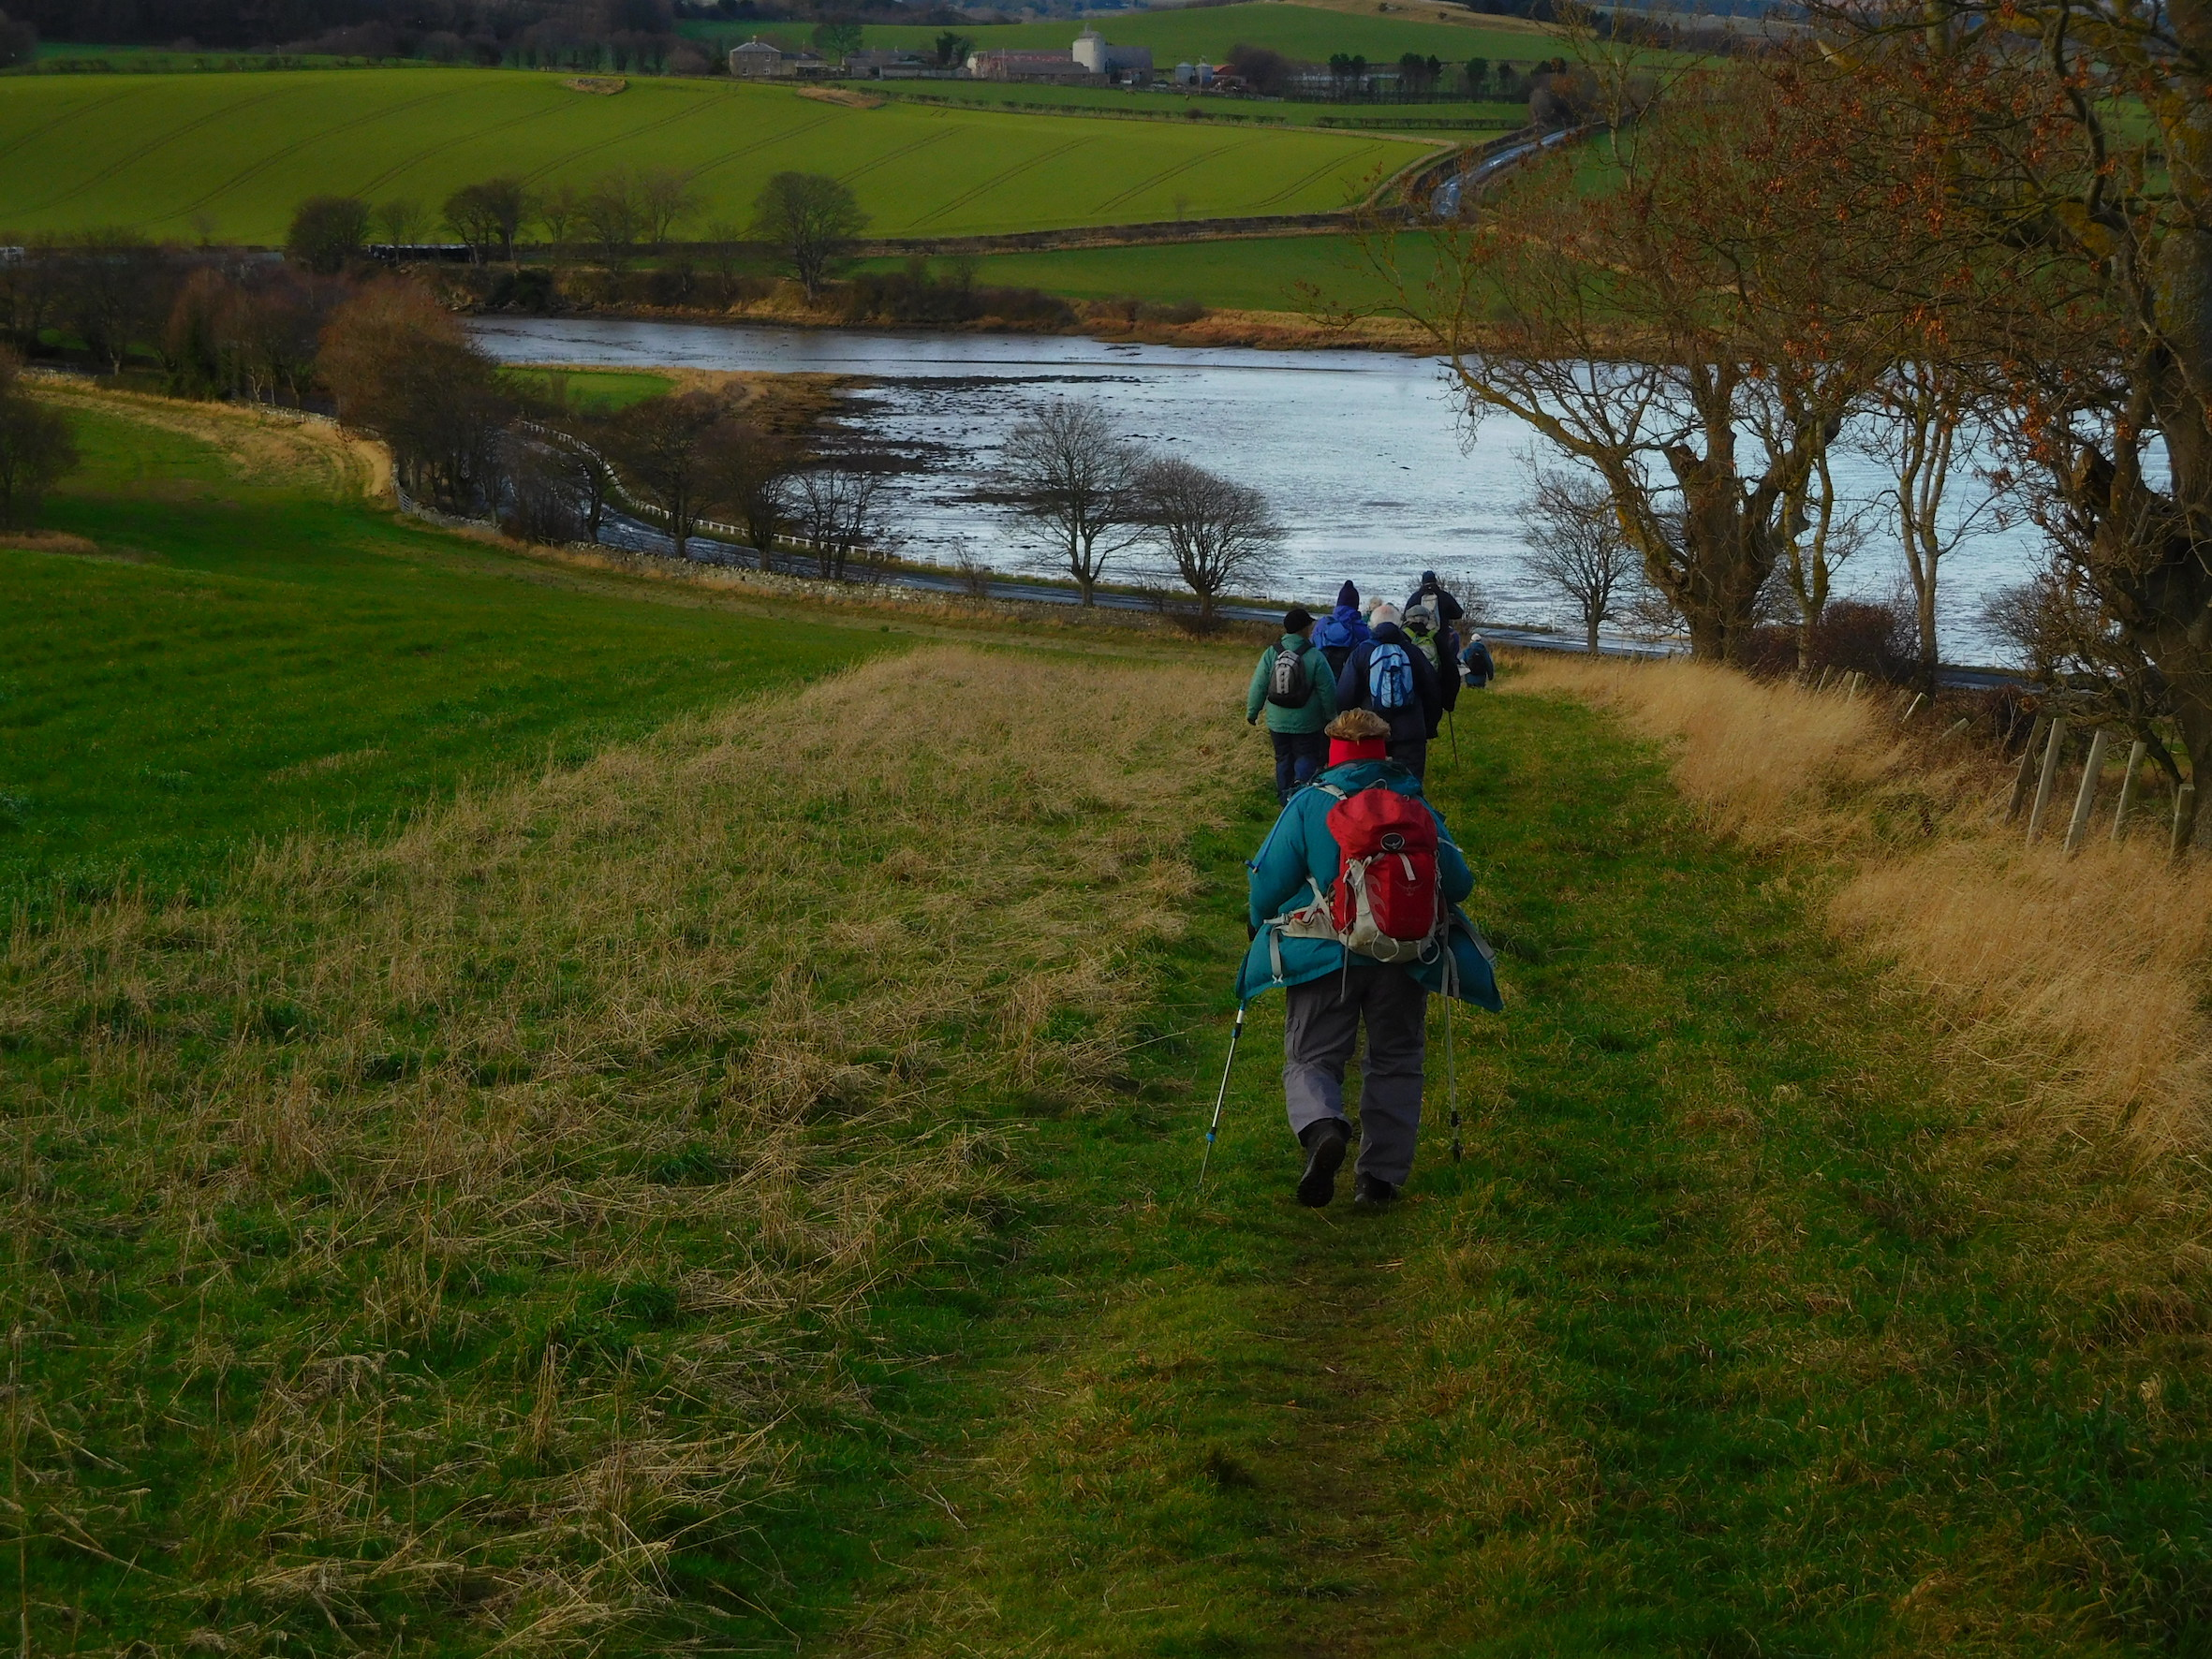 Heading to Budle Bay